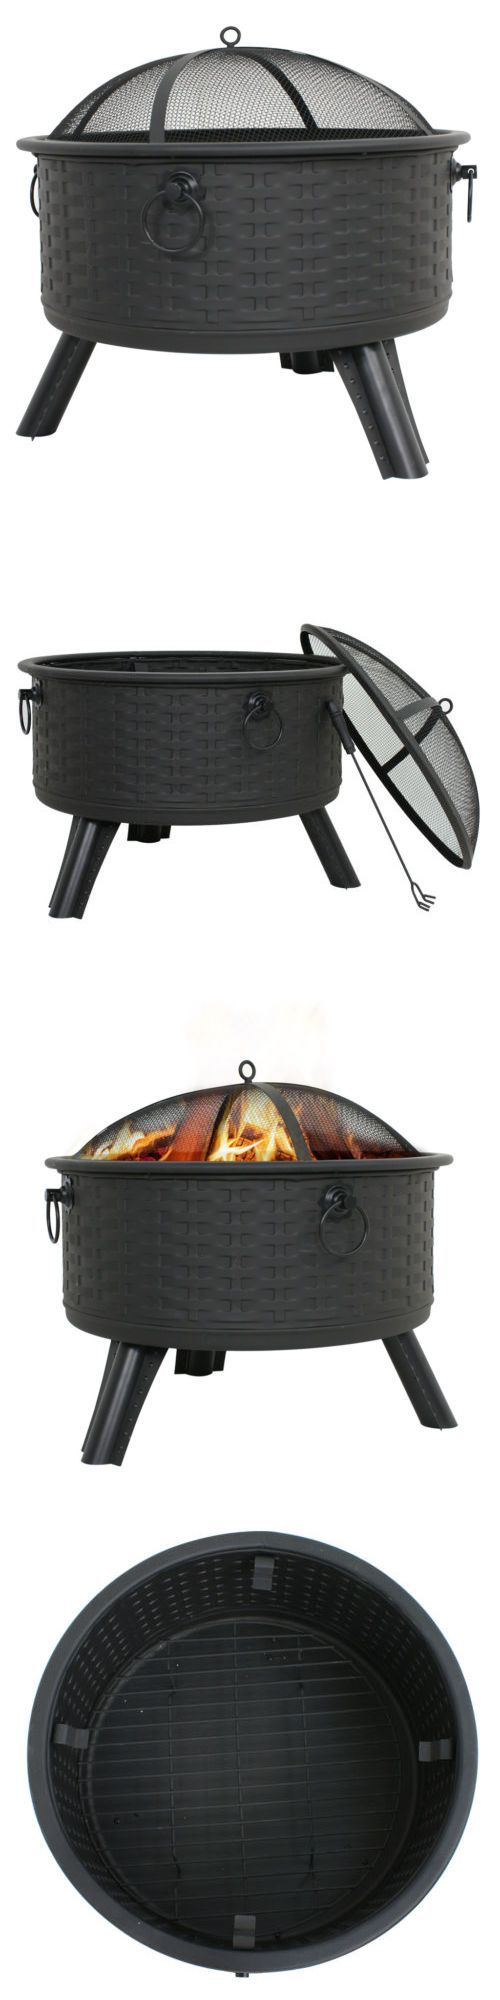 Fire Pits and Chimineas 85916: Patio Deck Firepit Outdoor Fireplace Wood Burning Heater Pit Backyard Fire Cover -> BUY IT NOW ONLY: $79.99 on eBay!